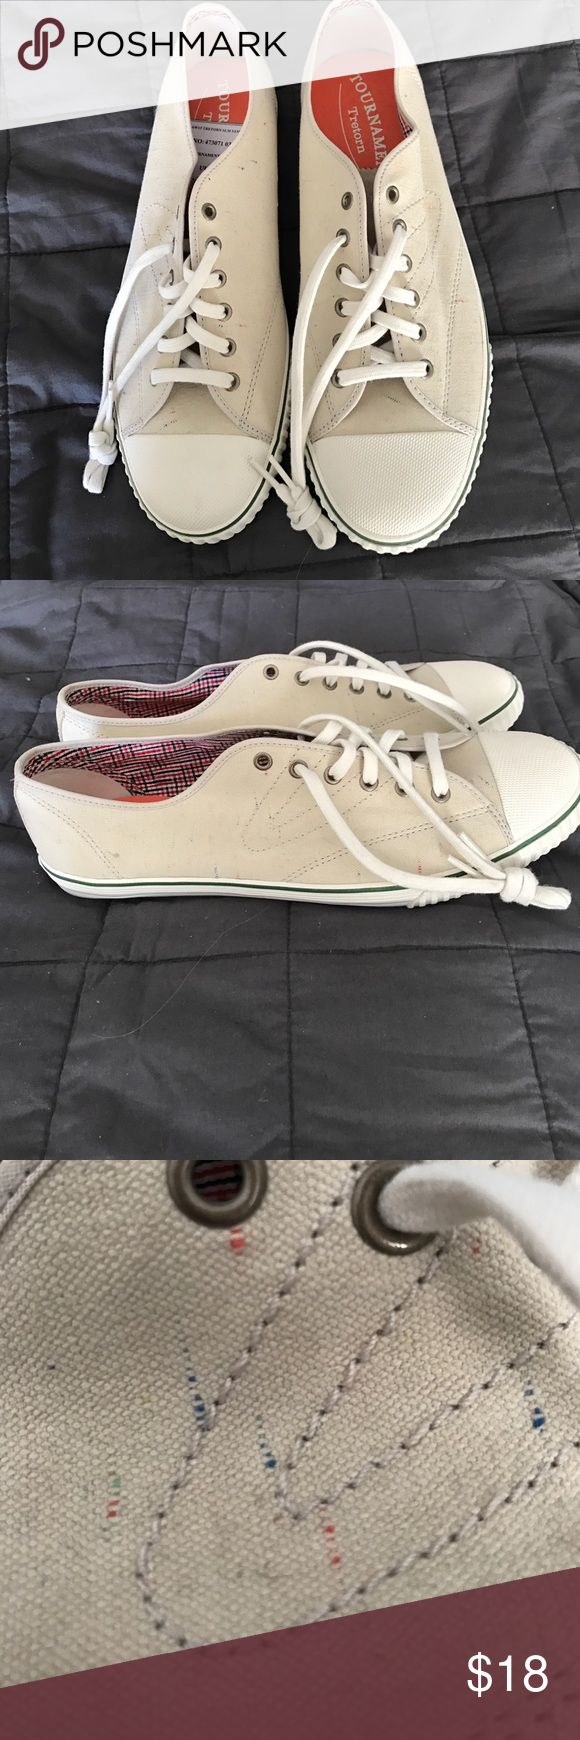 🎾NWOT Tretorn 🎾 Men's Casual Sneakers 🎾NWOT Tretorn 🎾 Men's Casual Sneakers. Never worn, purchased from sample sale. Cool multi colored stitching. Tretorn Shoes Sneakers